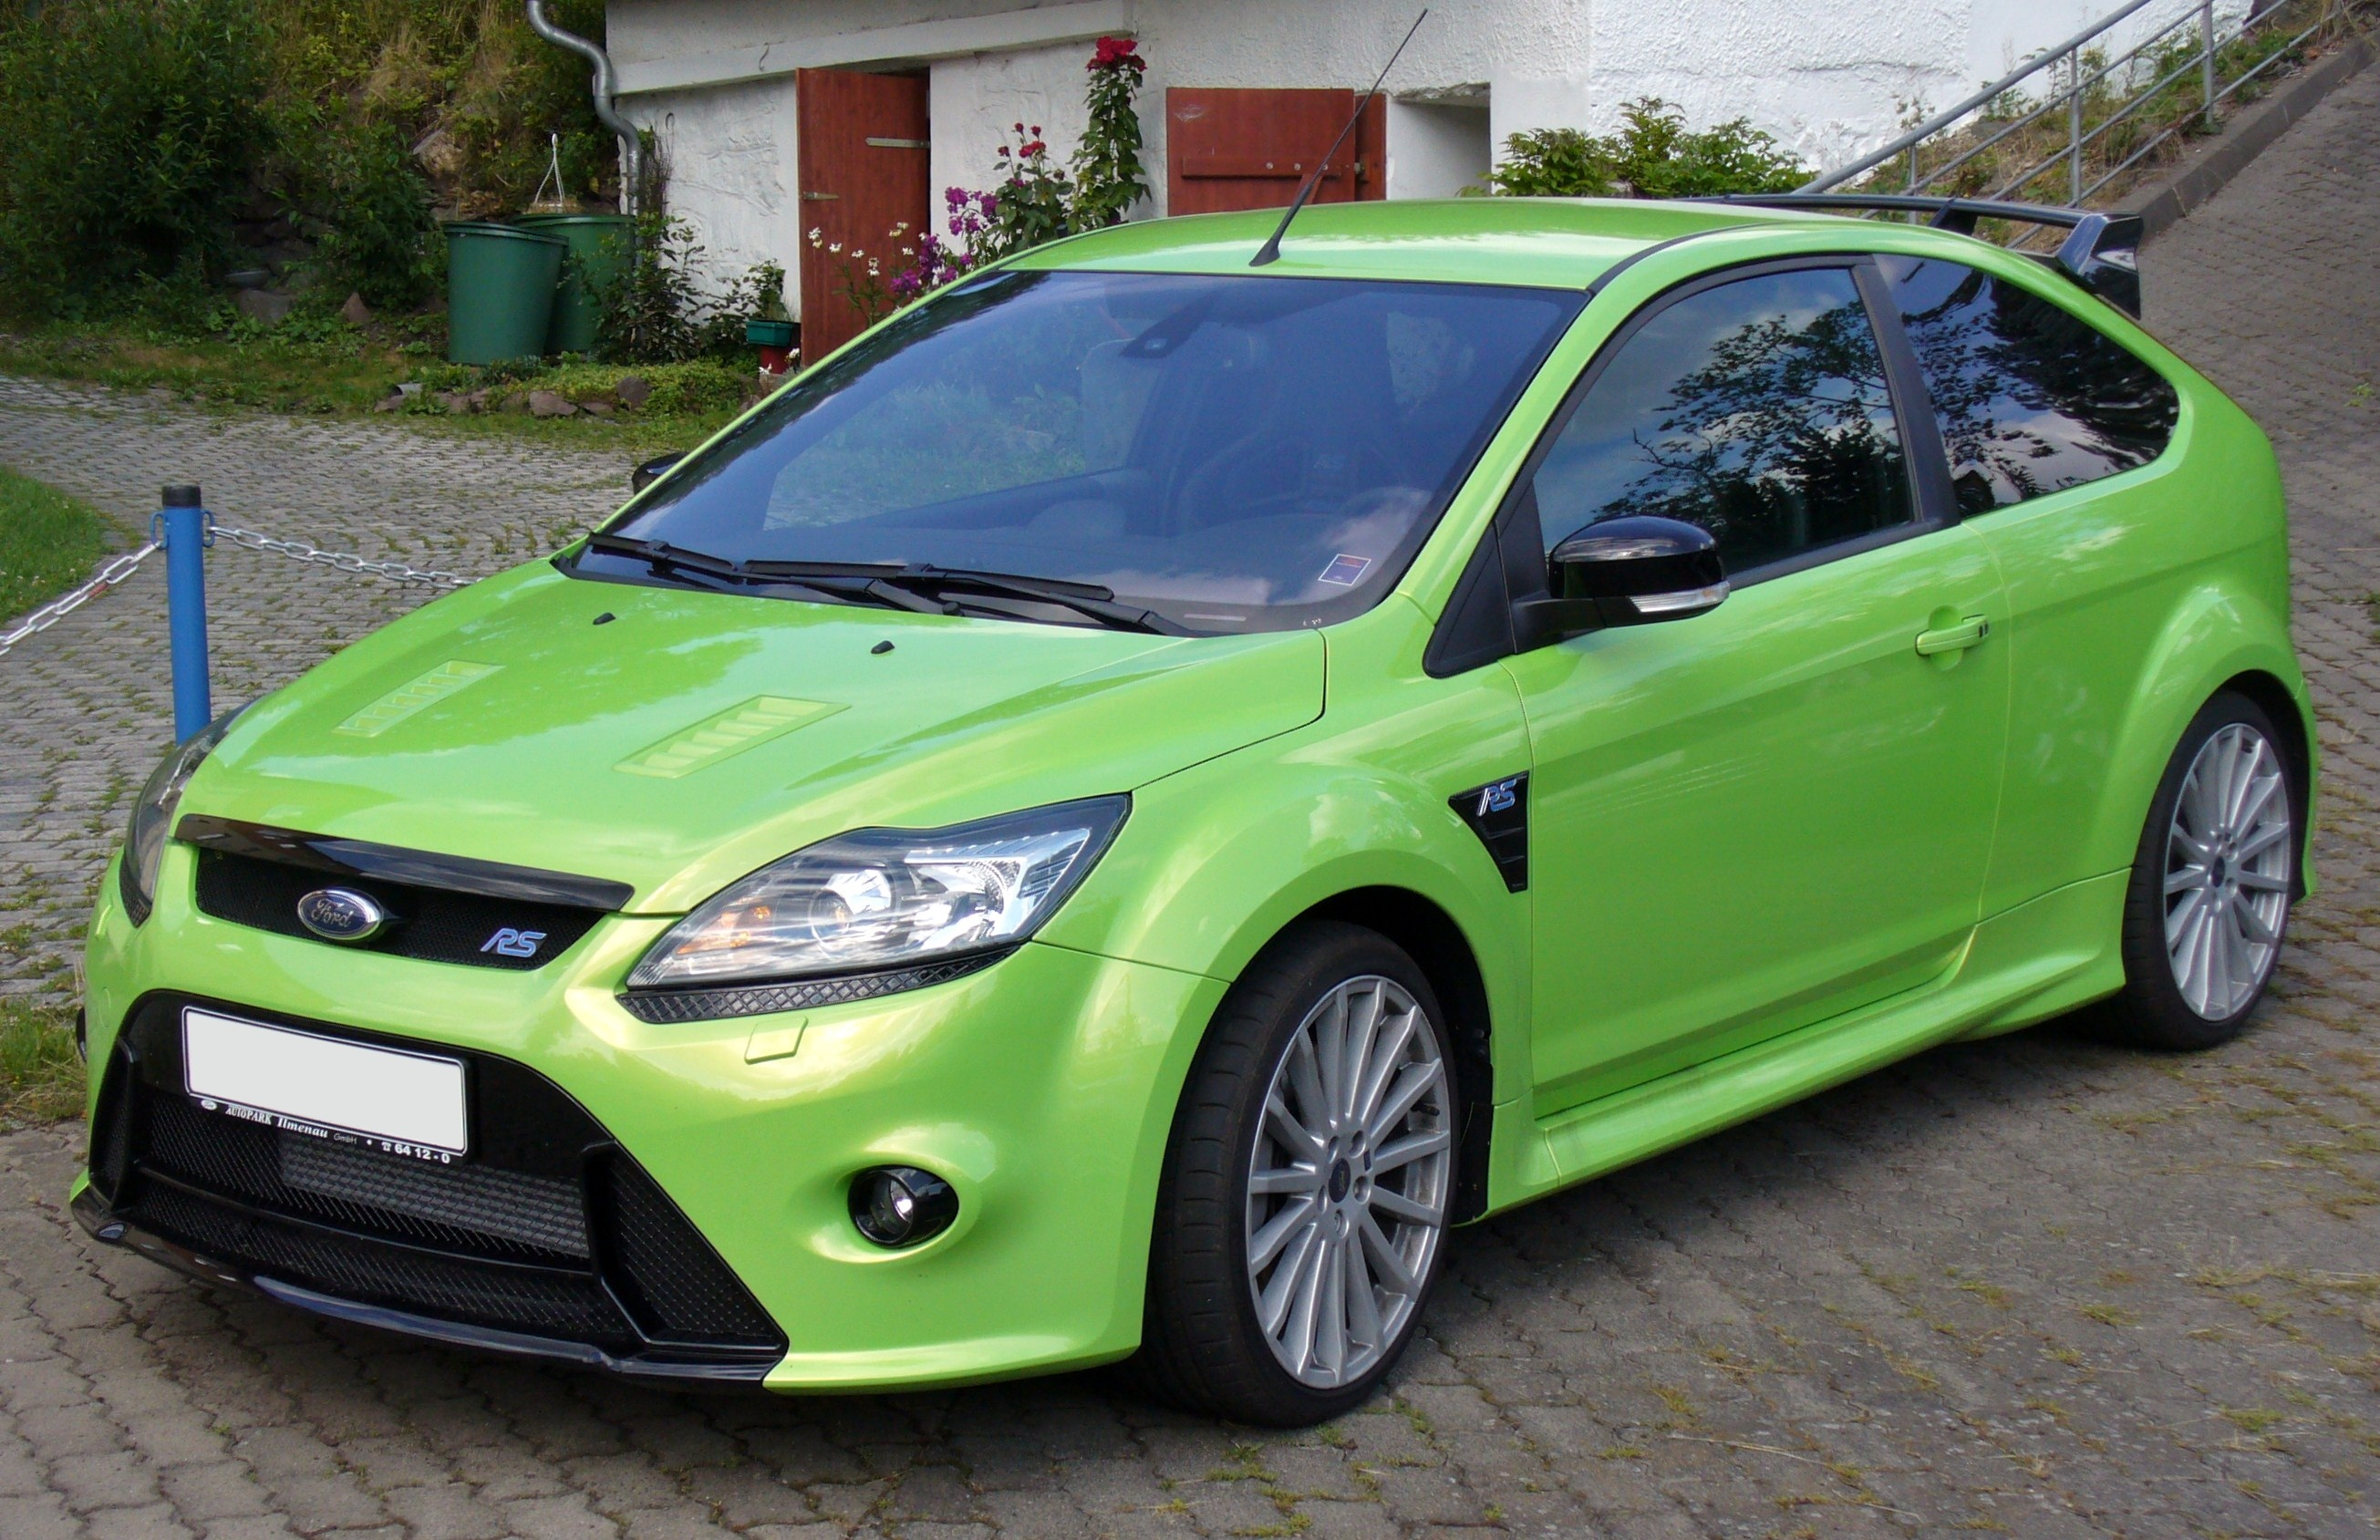 file ford focus ii rs jpg wikipedia. Black Bedroom Furniture Sets. Home Design Ideas